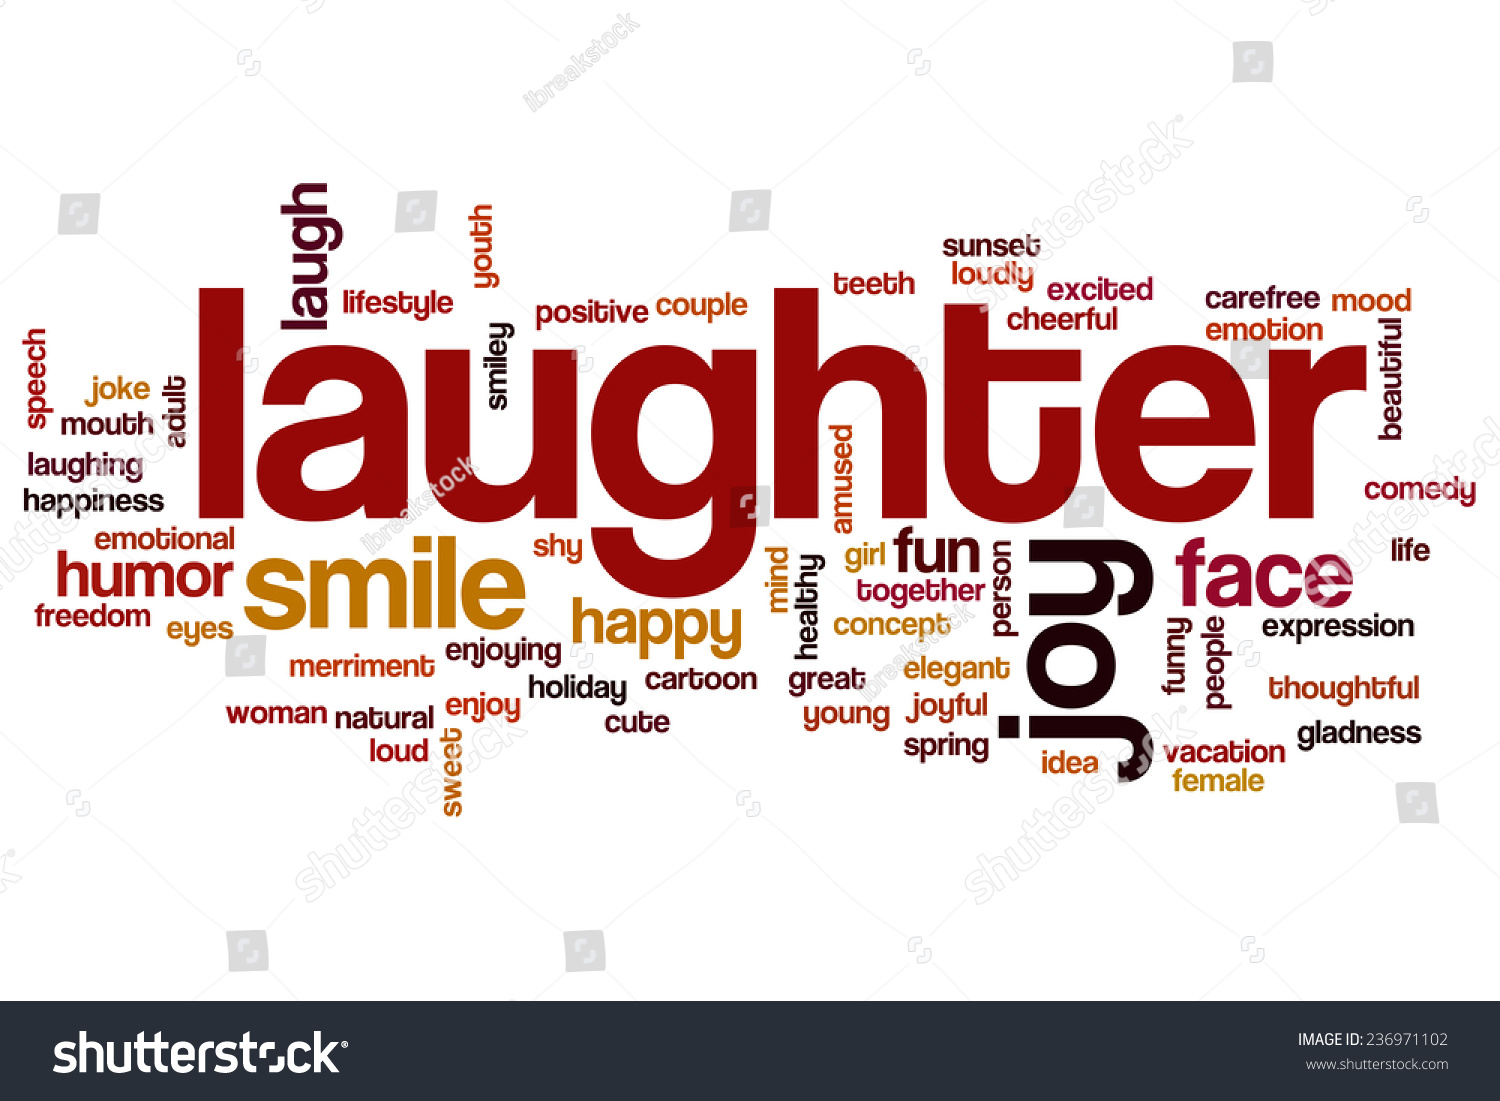 Laughter Word Cloud Concept Stock Photo 236971102 ...